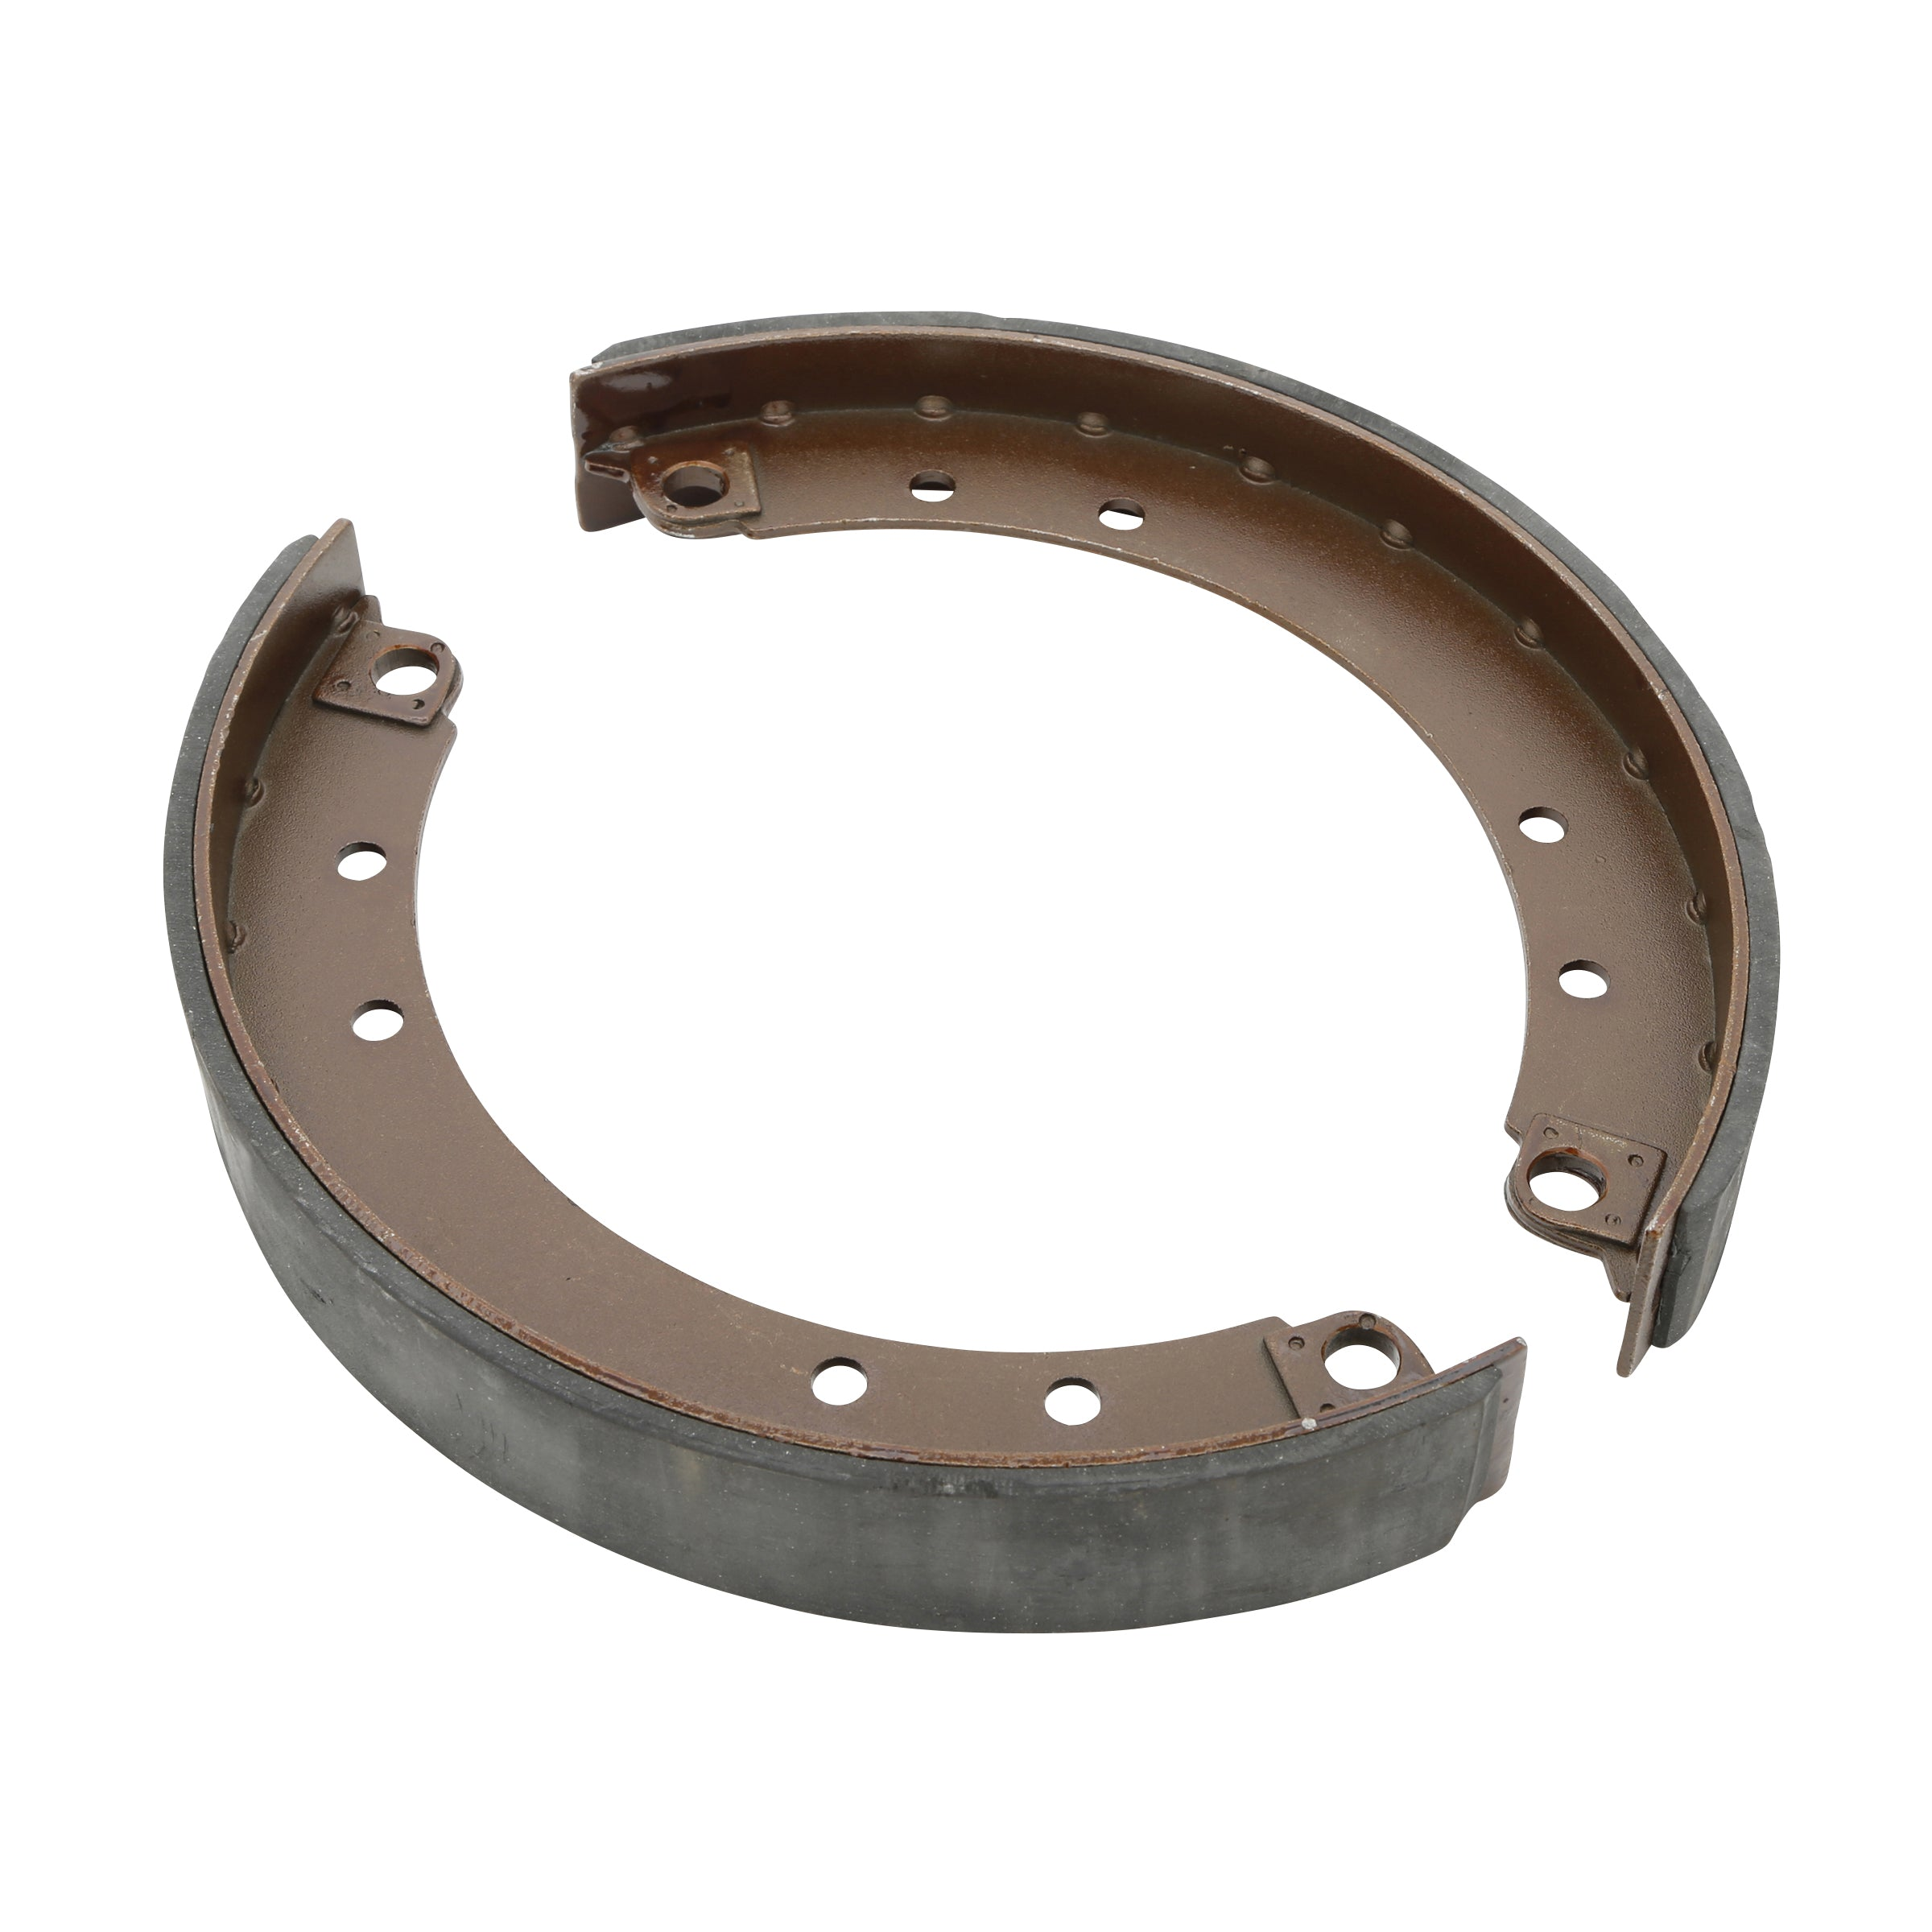 Service Brake Shoes (Relined) • 1928-31 Model A Ford